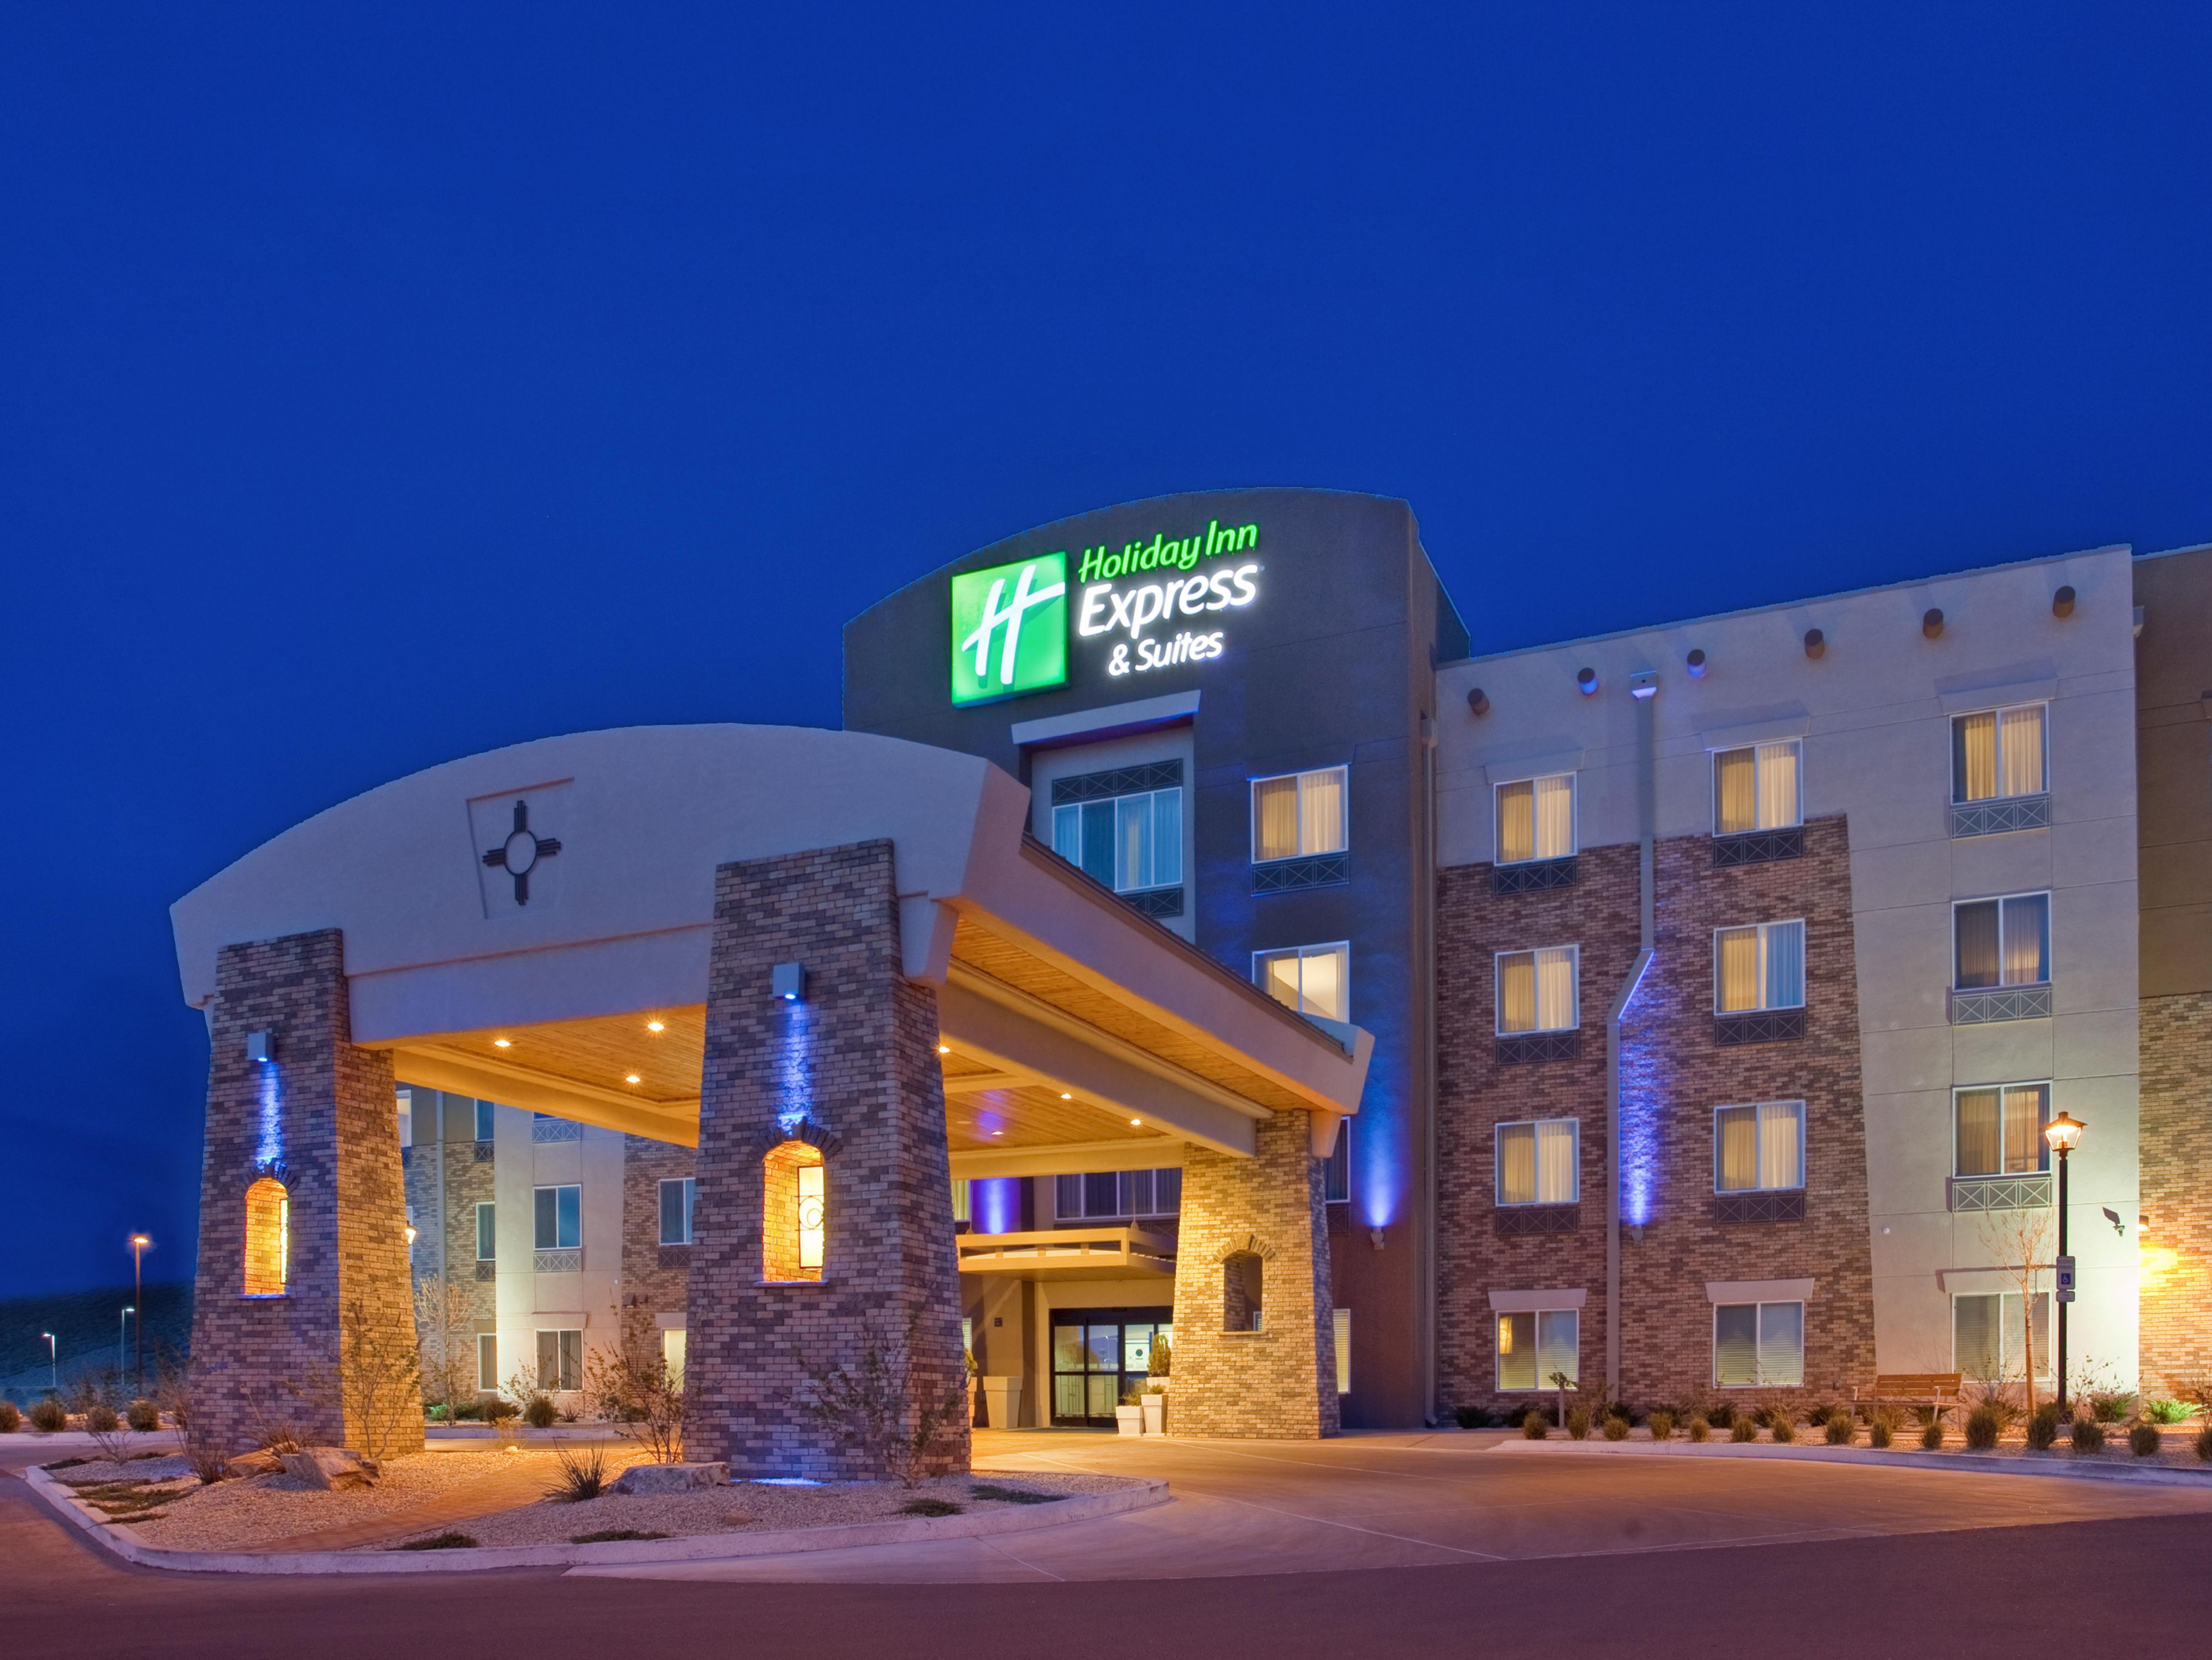 Welcome to the Holiday Inn Express & Suites Las Cruces North.